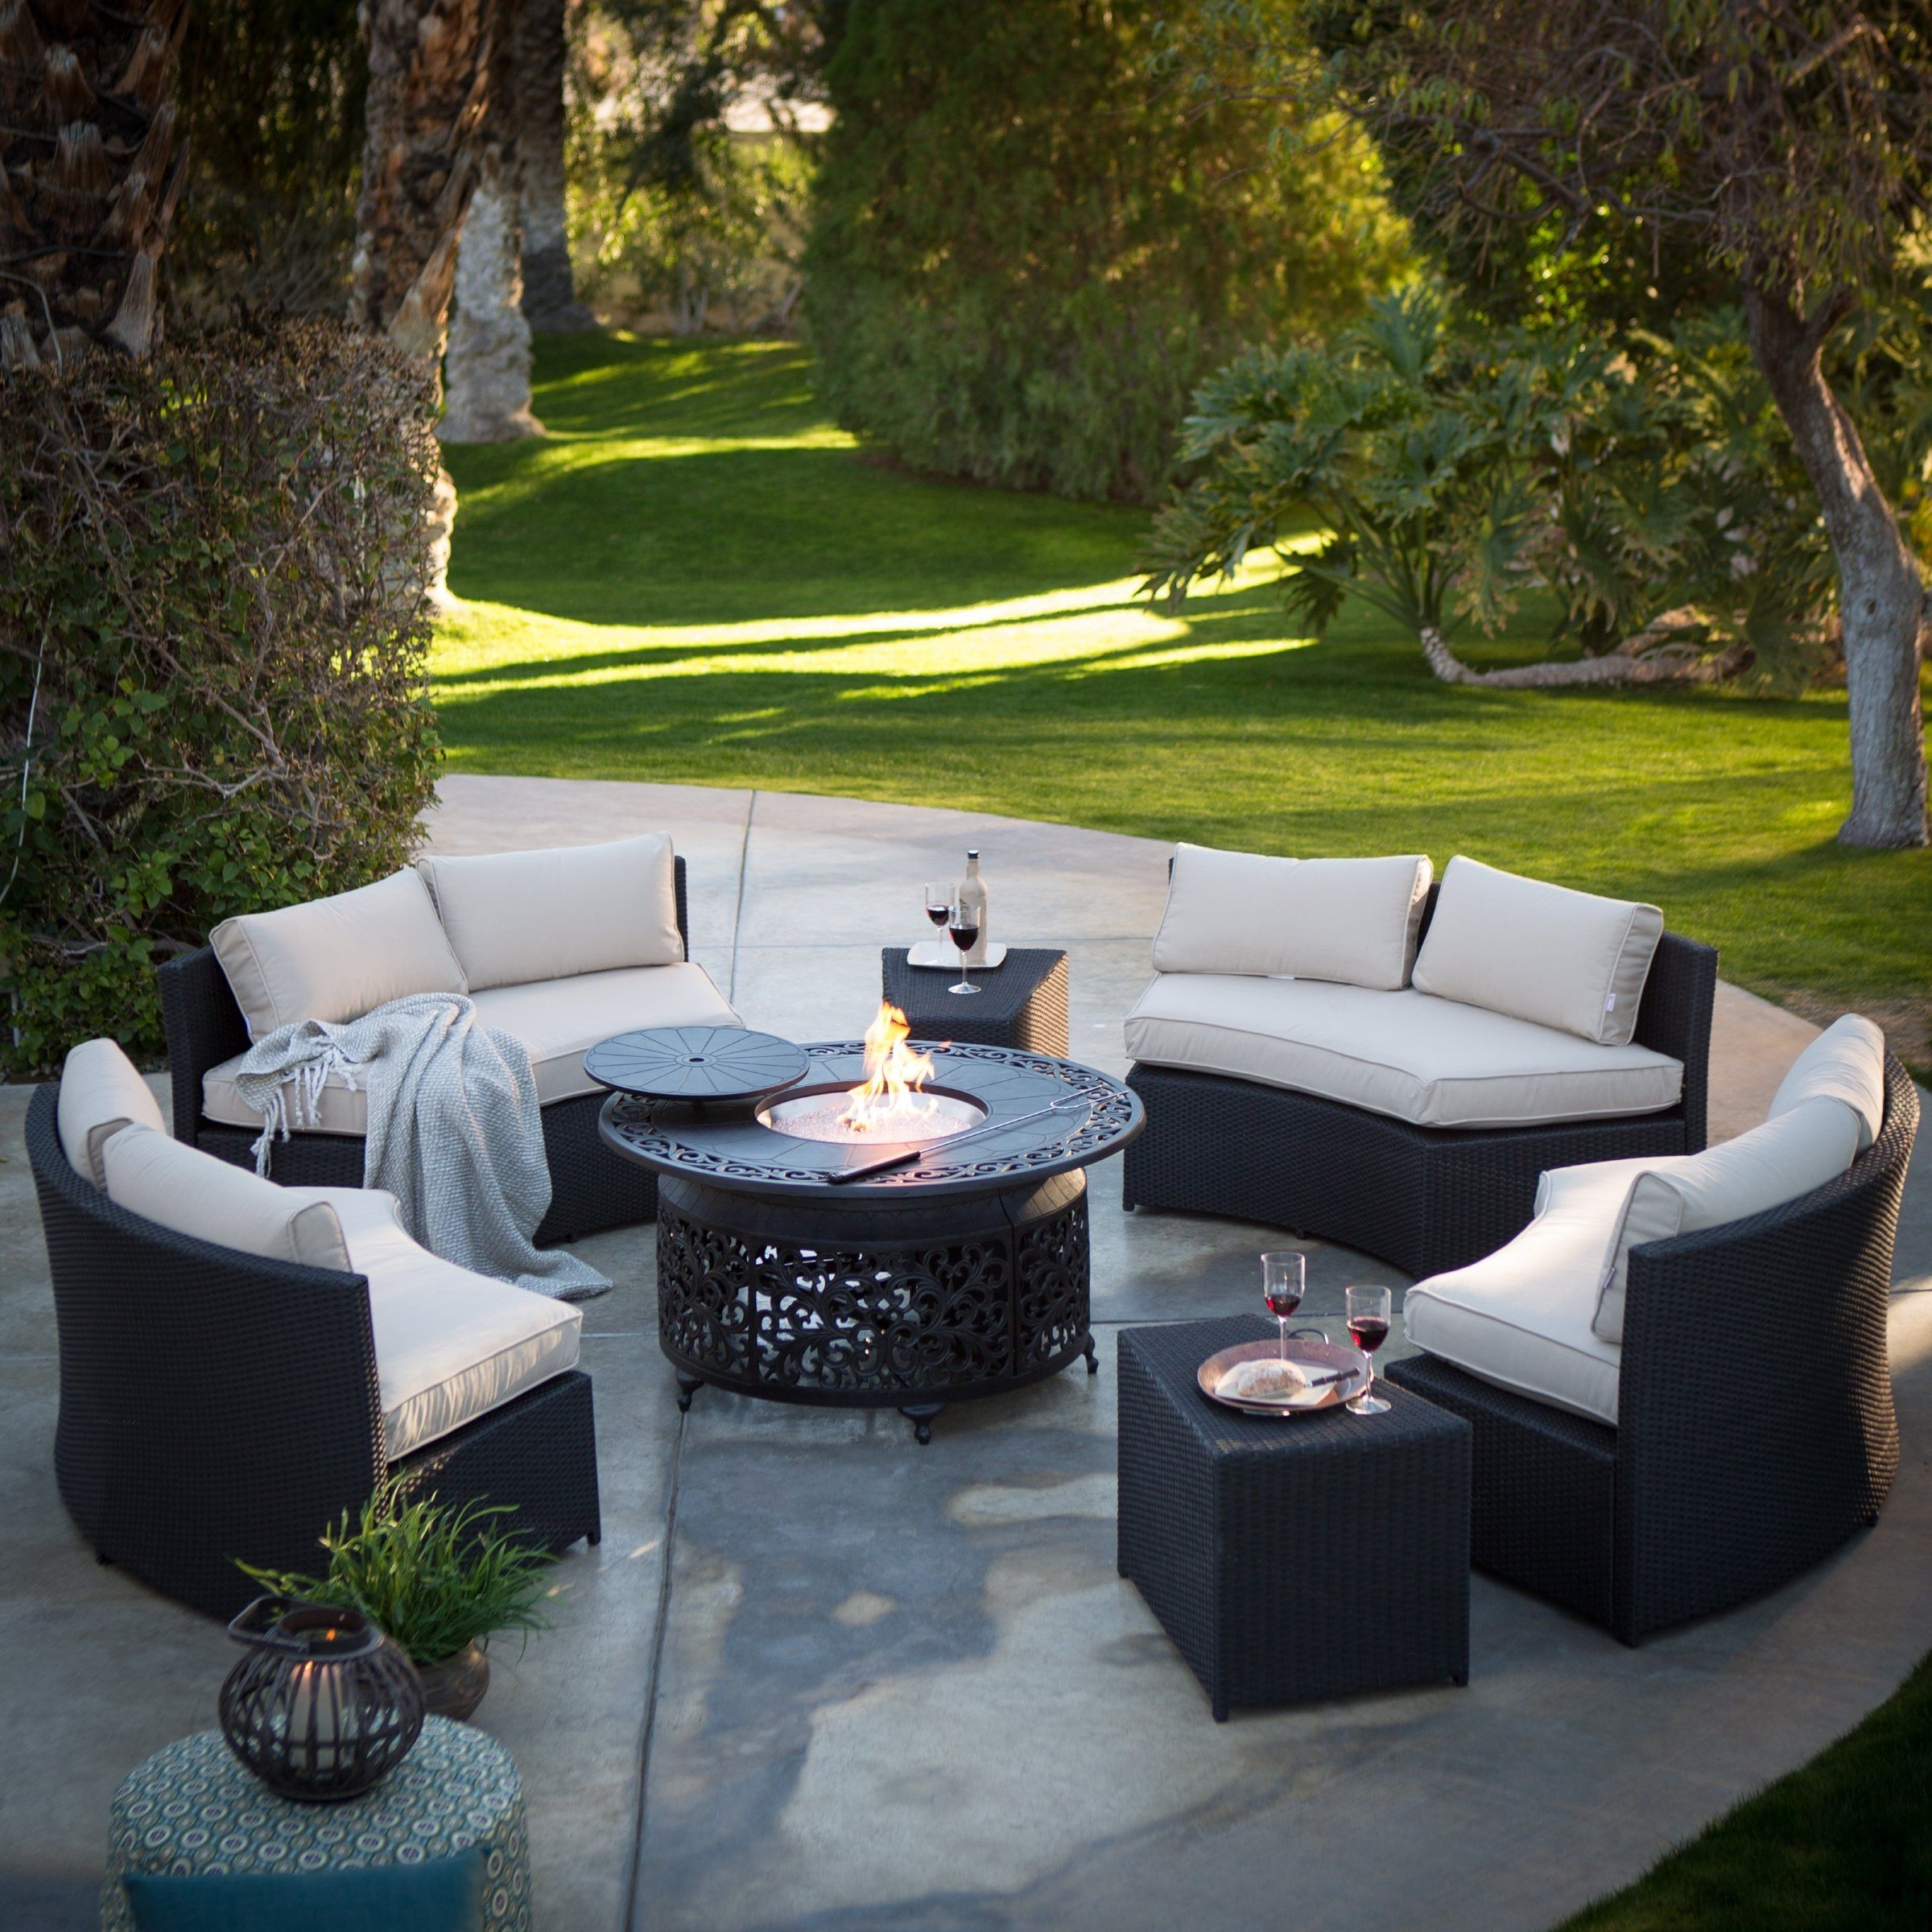 Trendy Radiate Warm Fun With Friends And Family Whenever You Gather! This With Regard To Patio Conversation Sets With Fire Pit Table (View 14 of 15)